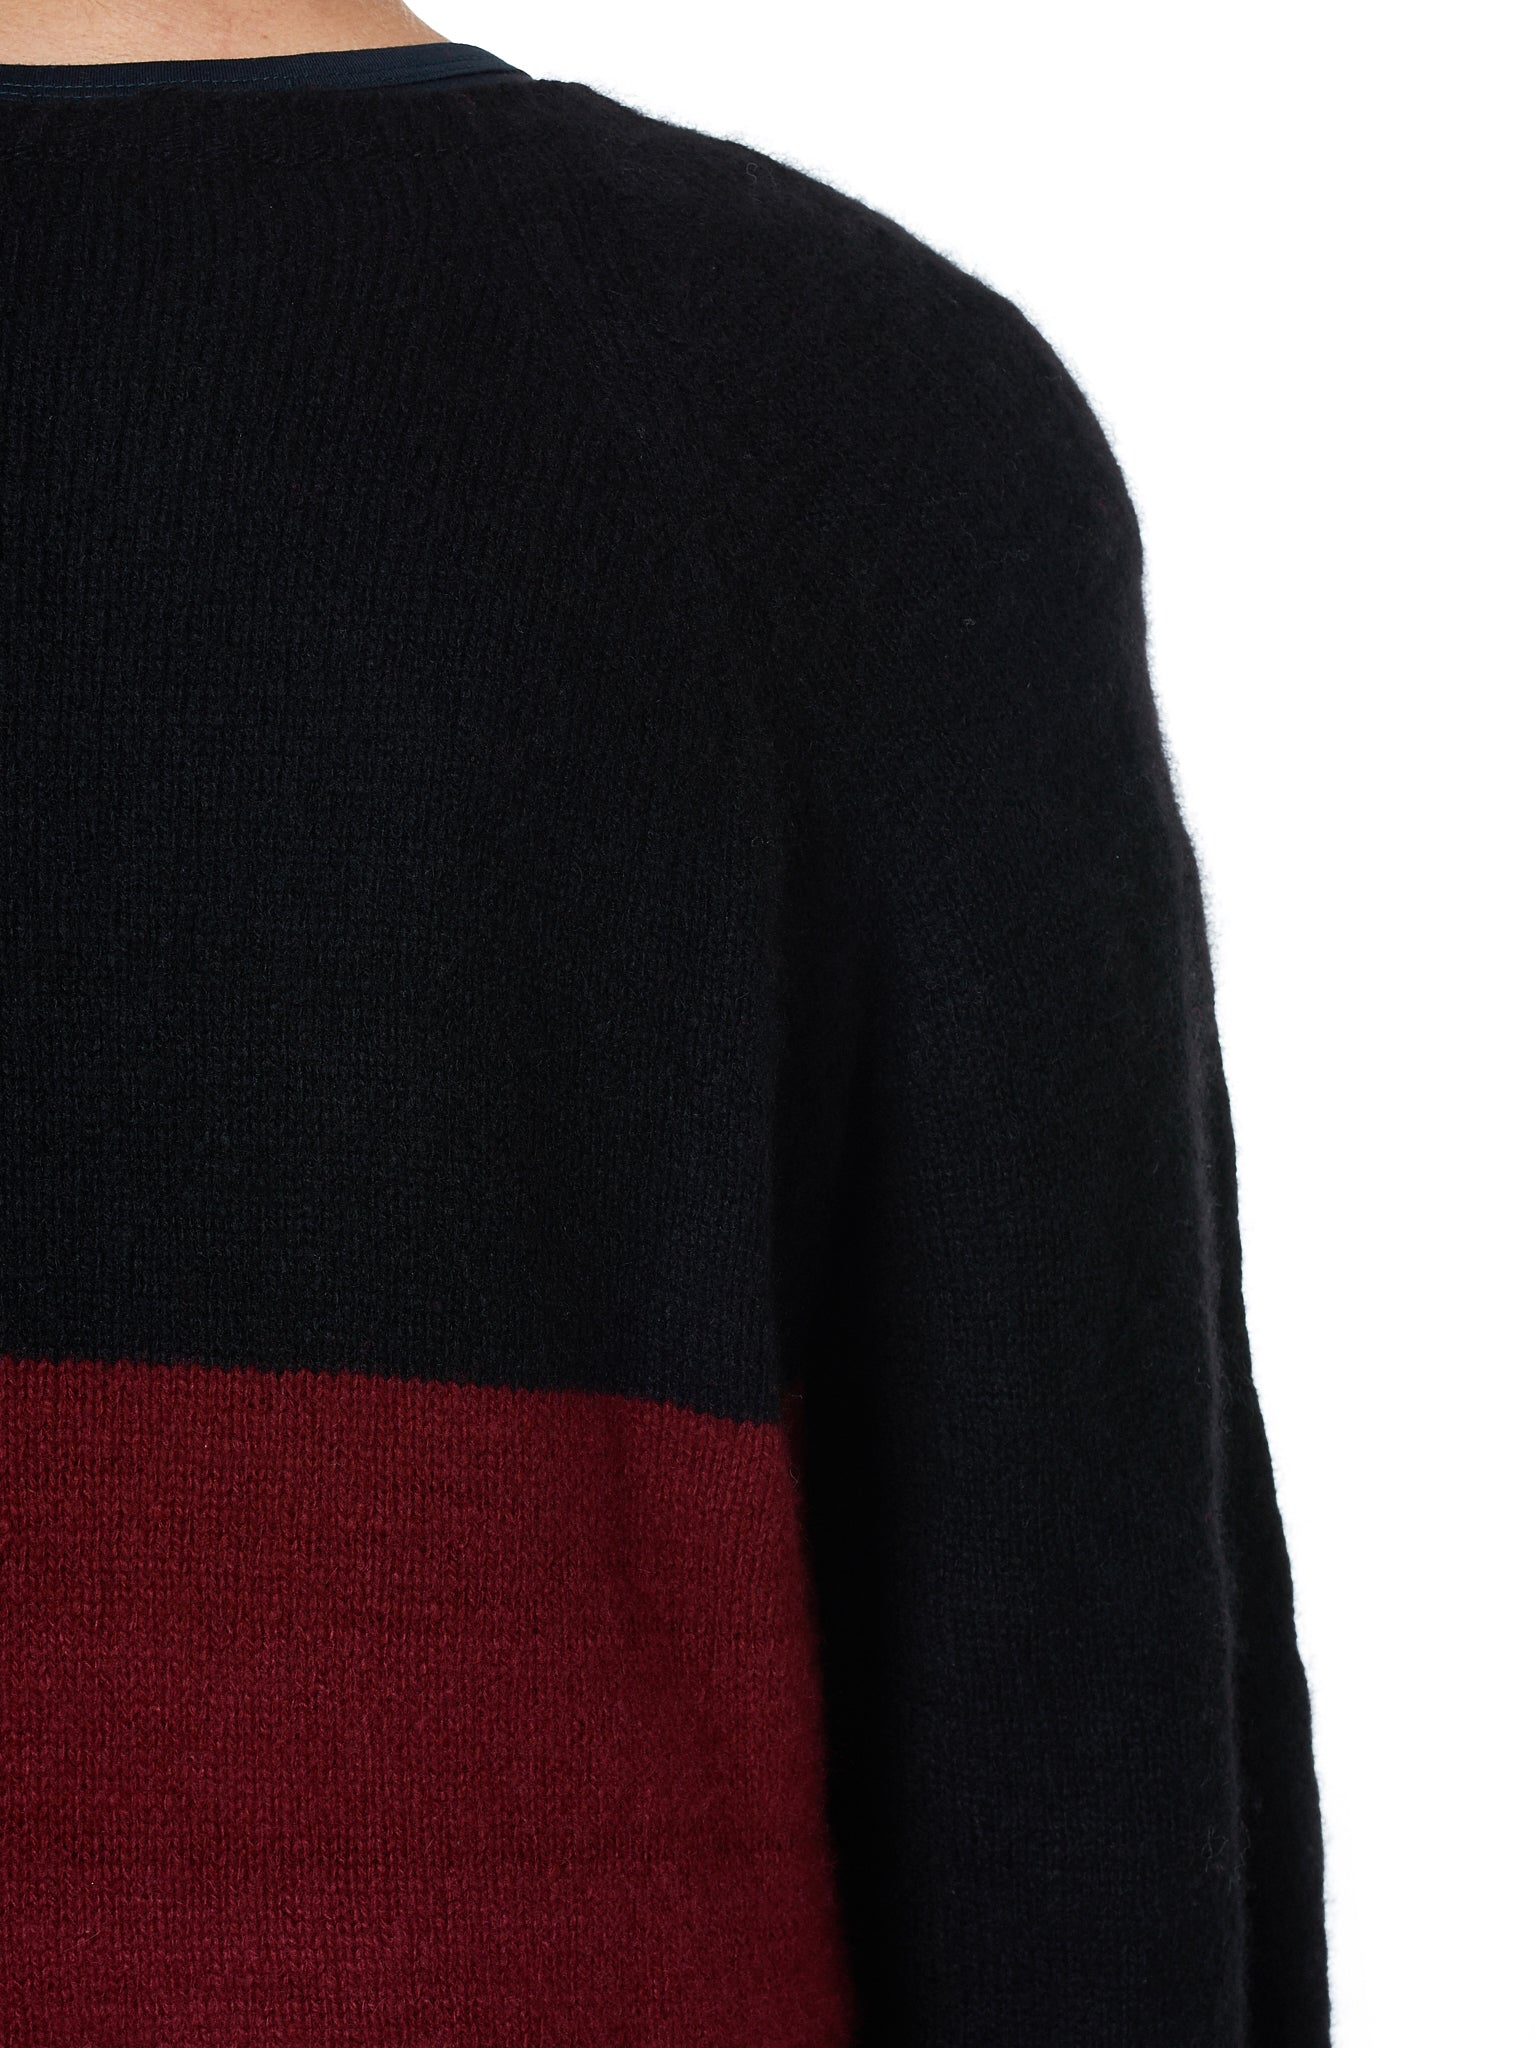 Denis Colomb Sweater - Hlorenzo Detail 2